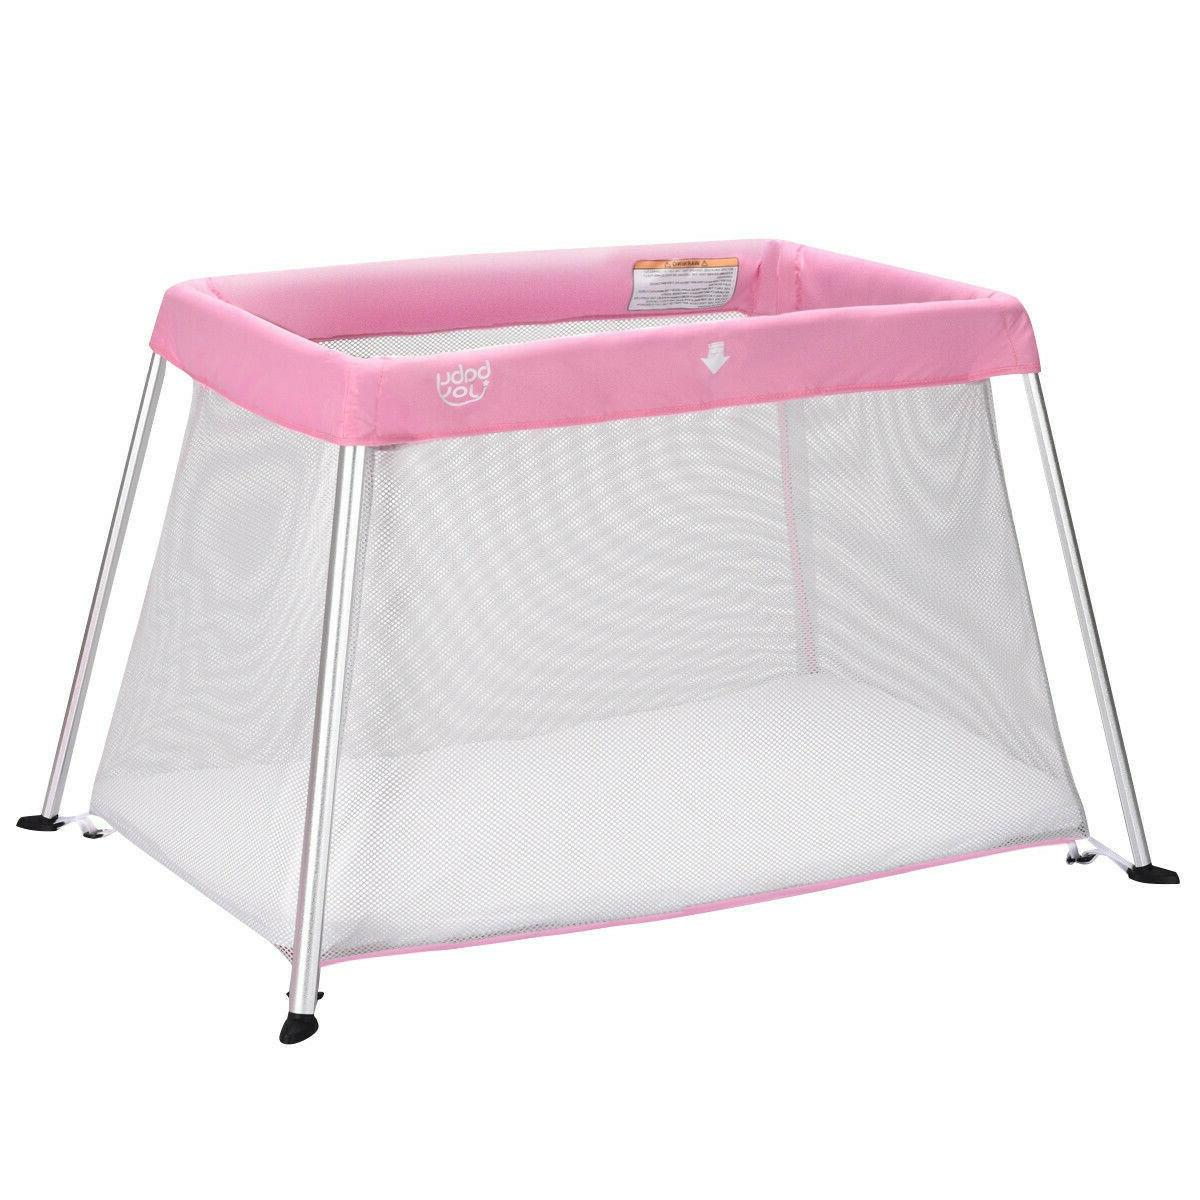 Baby Girl Travel Bed Portable Playpen Crib Foldable Play Yar